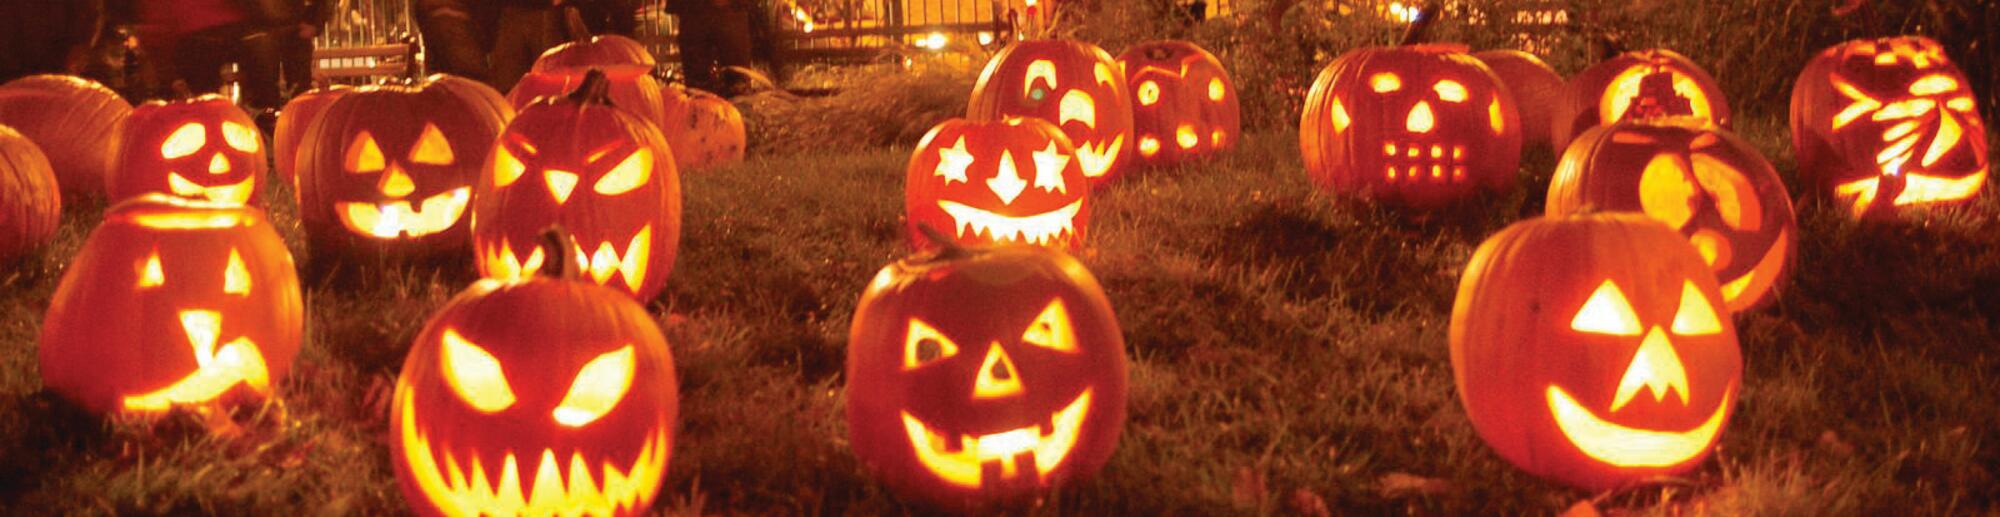 OFFERTA WEEK-END DI HALLOWEEN A CESENATICO 2017